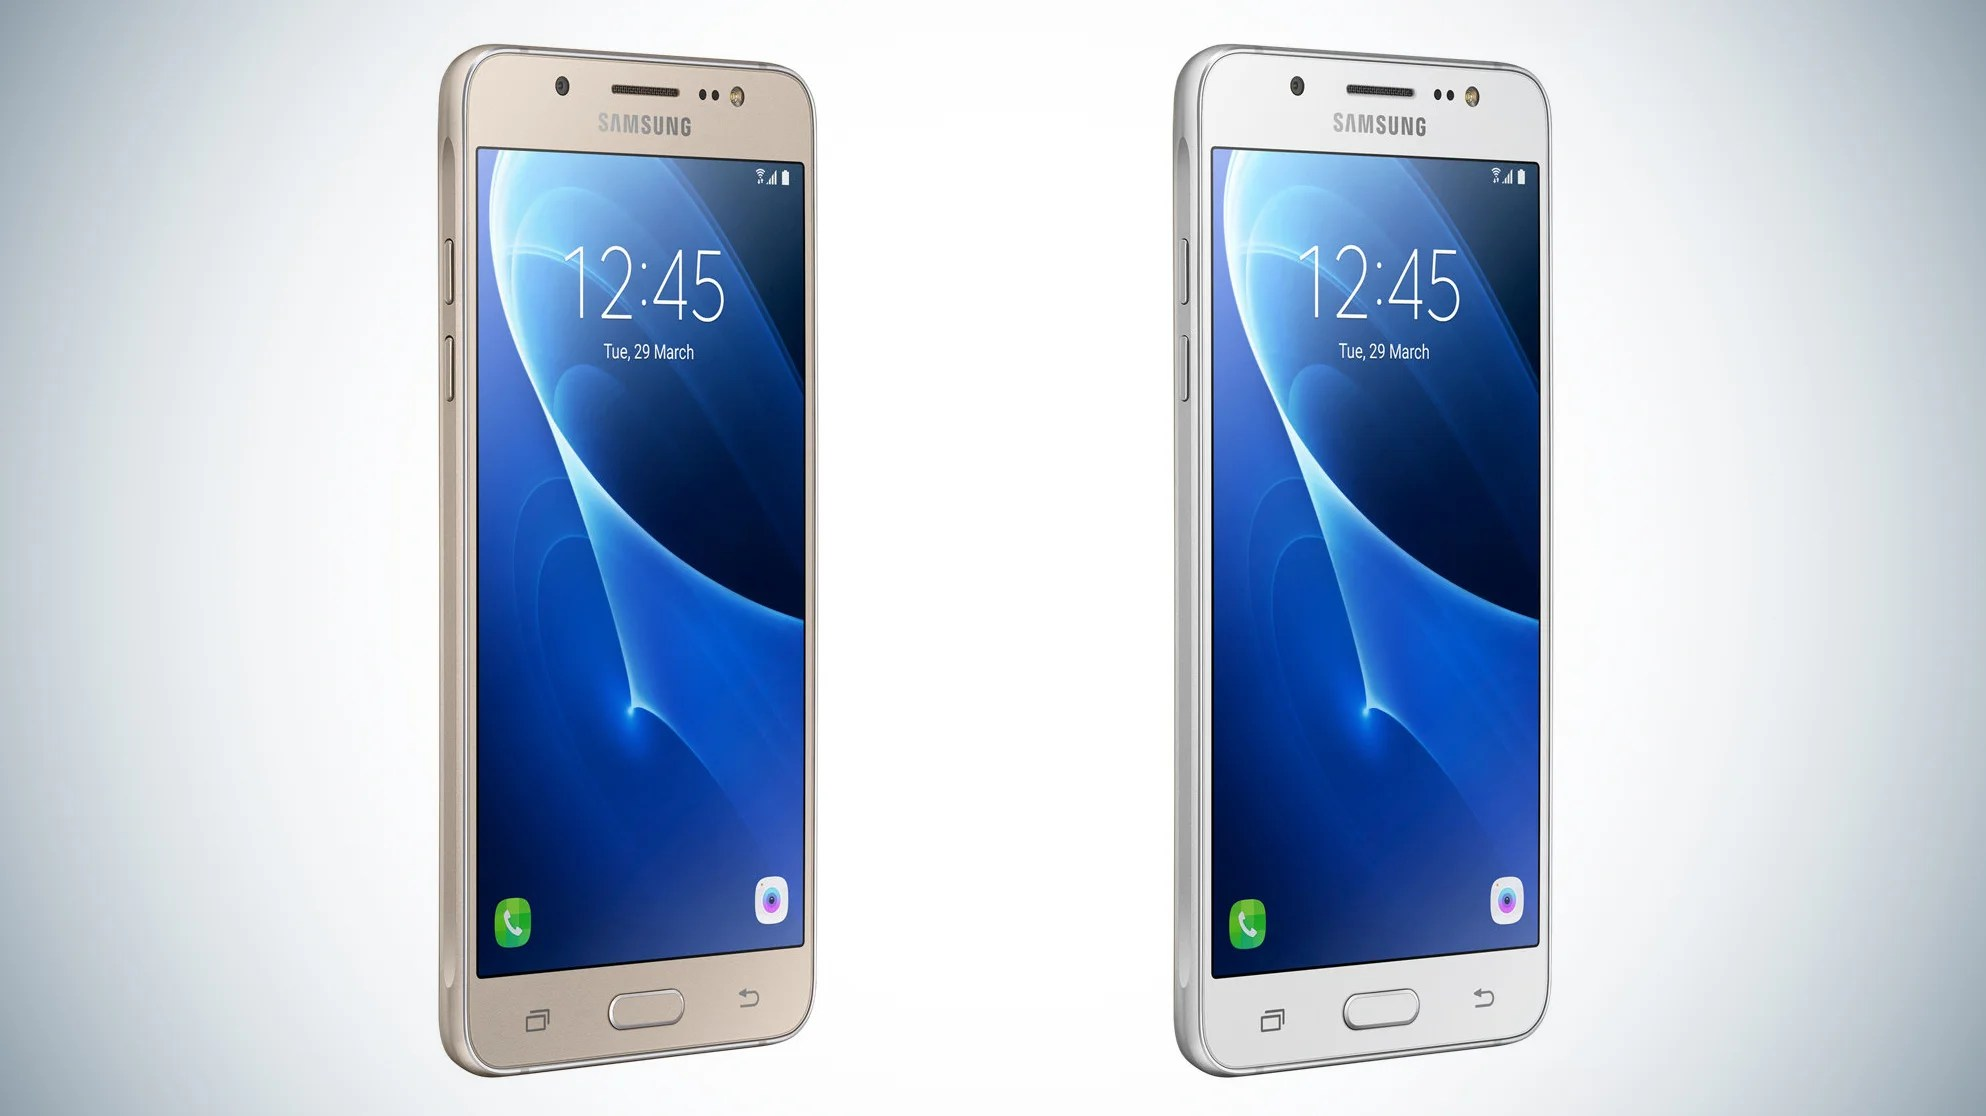 See The Best Samsung Galaxy J5 Deals In February 2018